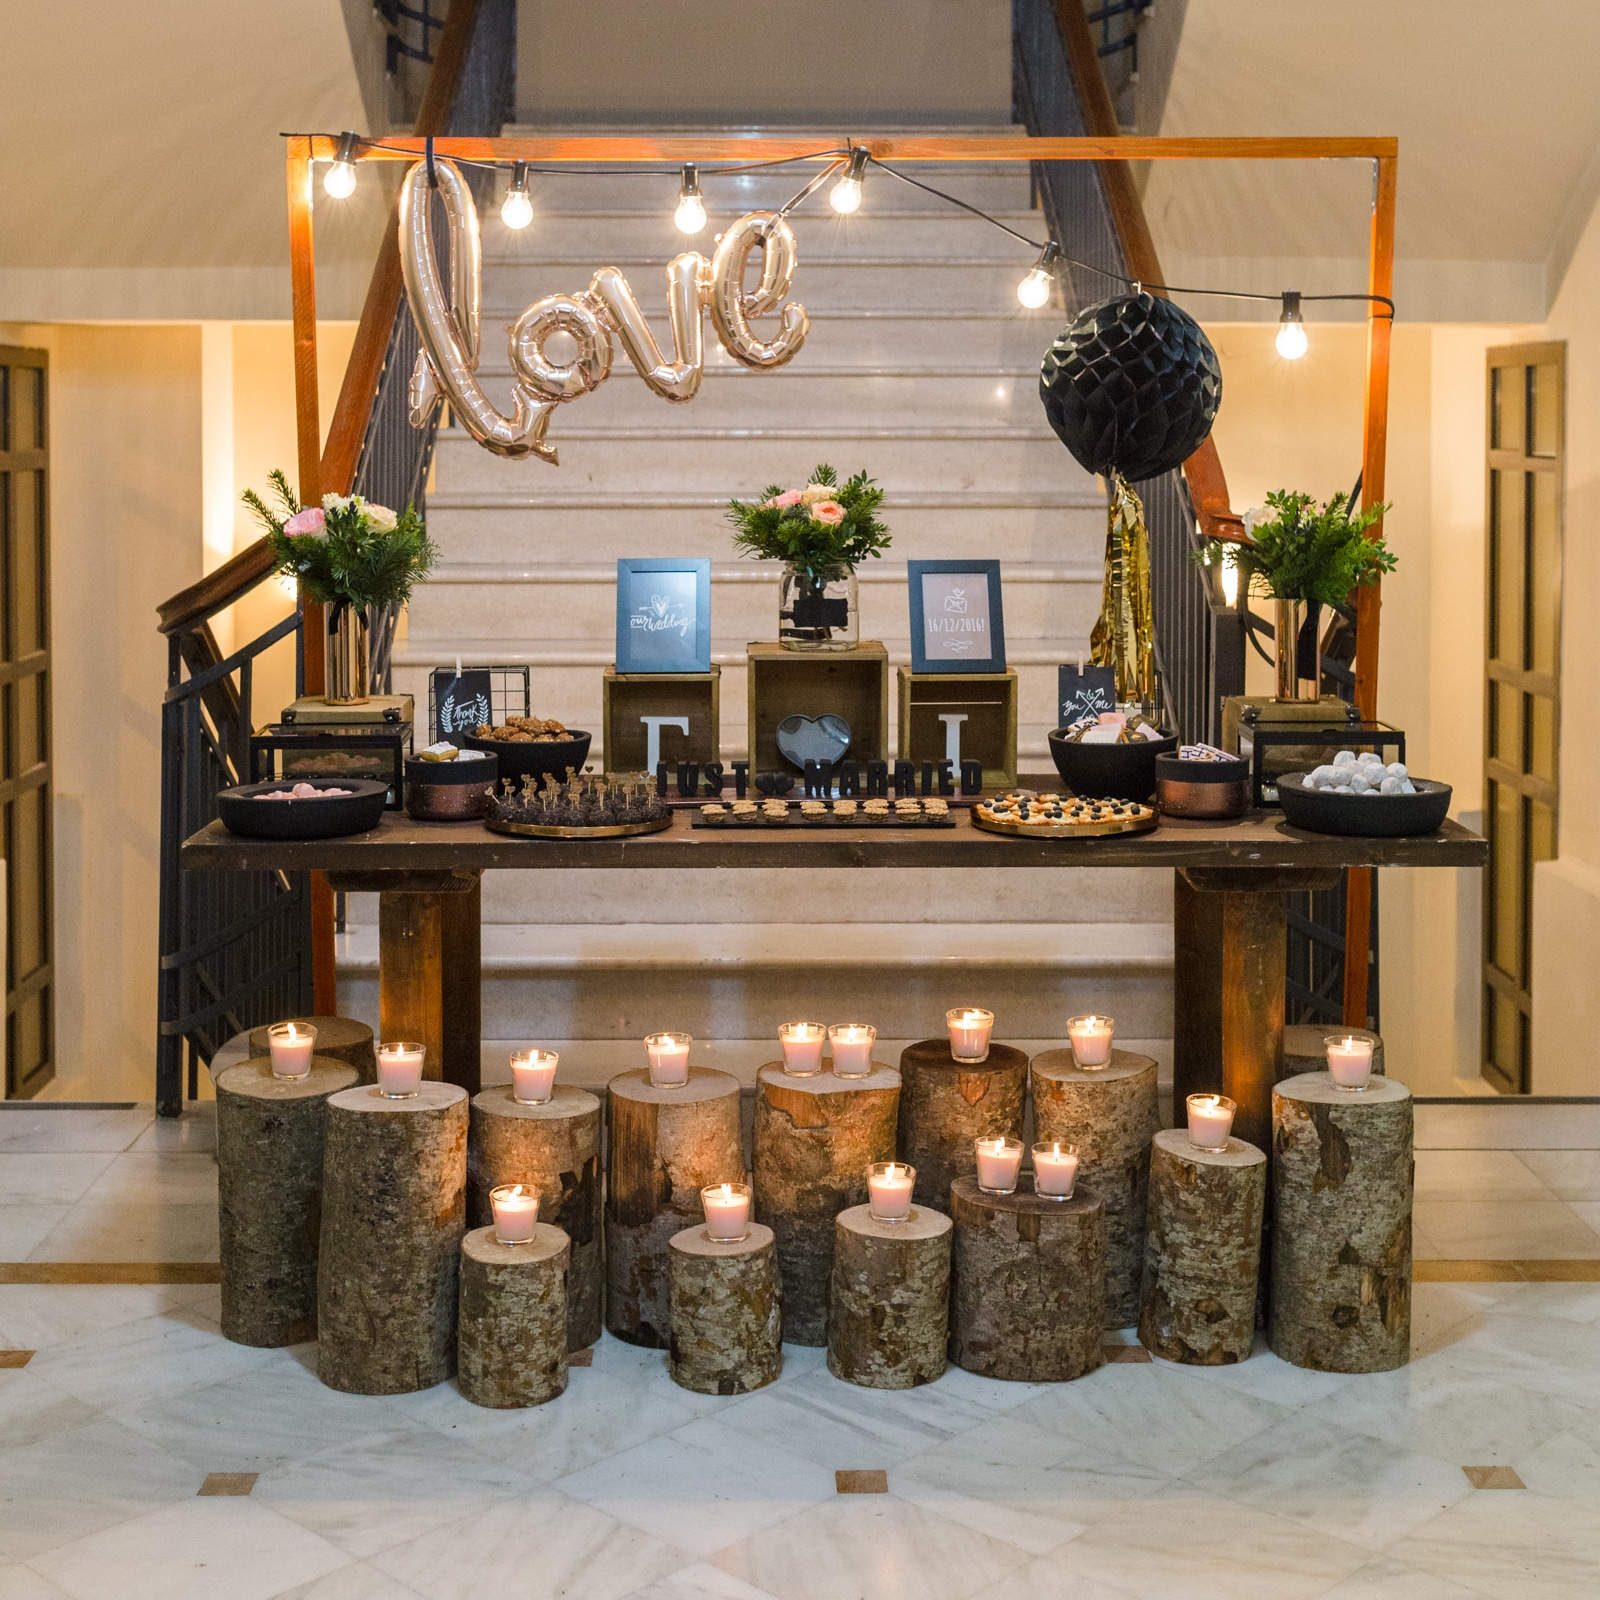 Rustic wish table with wooden logs